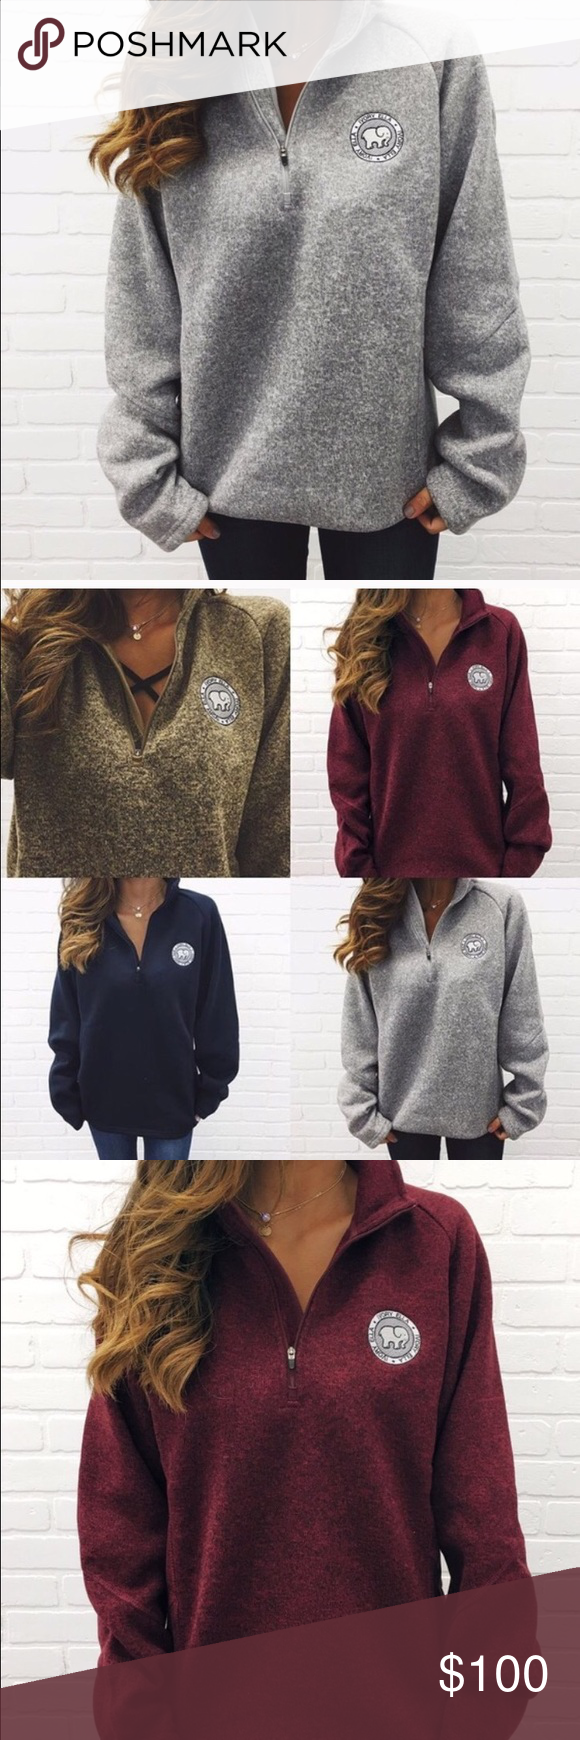 d432ca5bea9d Iso Heathered Fleece Quarter Zip Looking for any of these colors in either  a large or a medium. Really wanting to buy off merc.